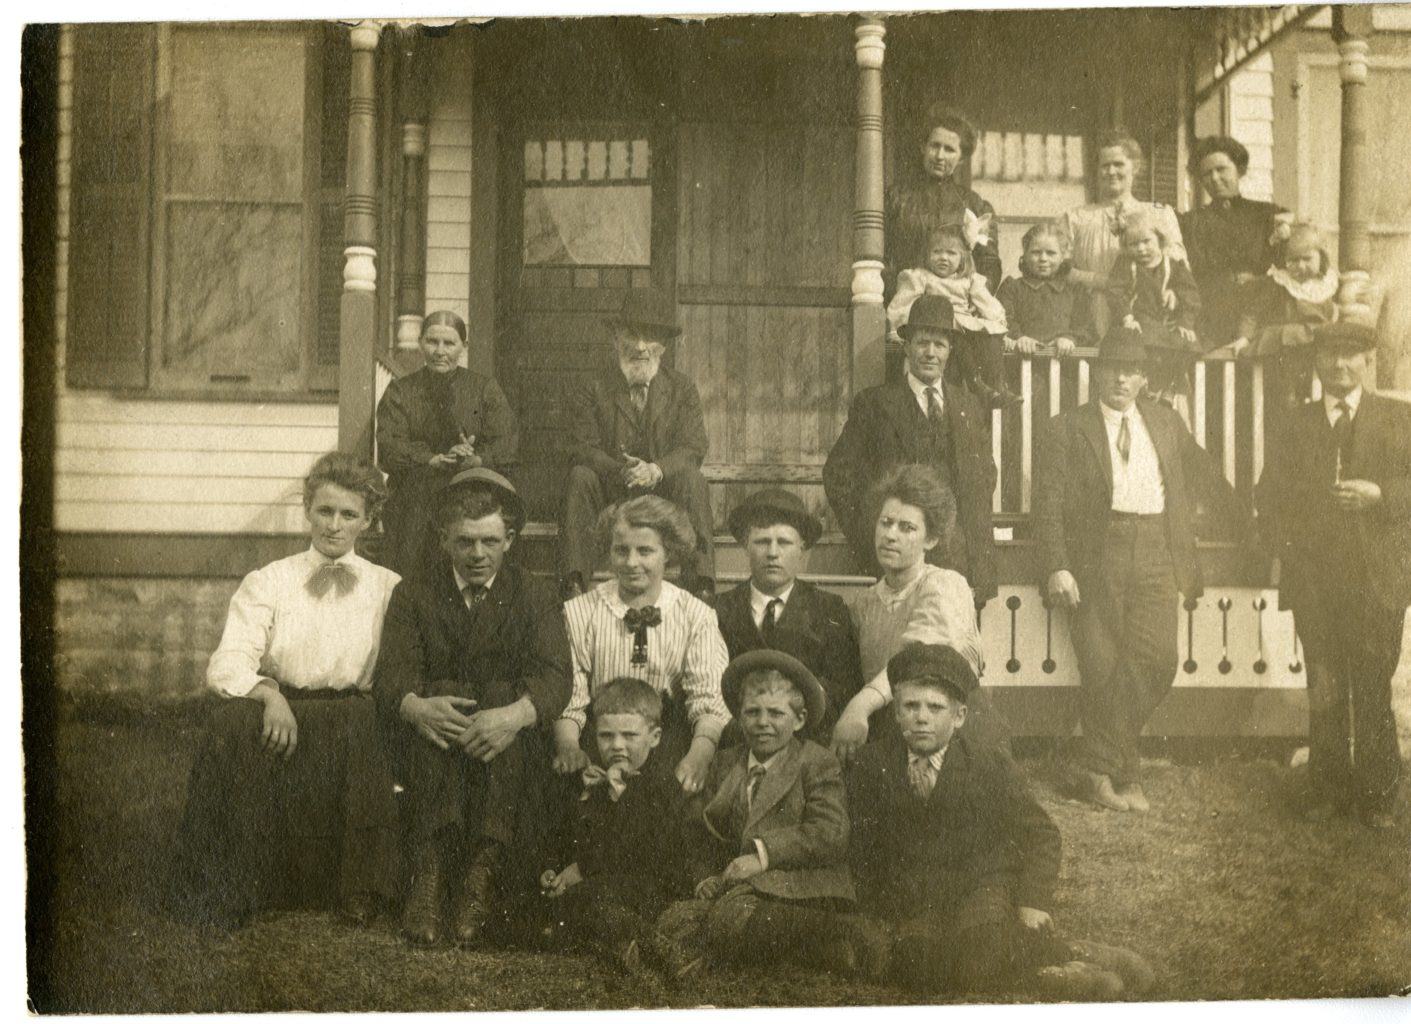 Group of men, women, and children sit outside of a house together.